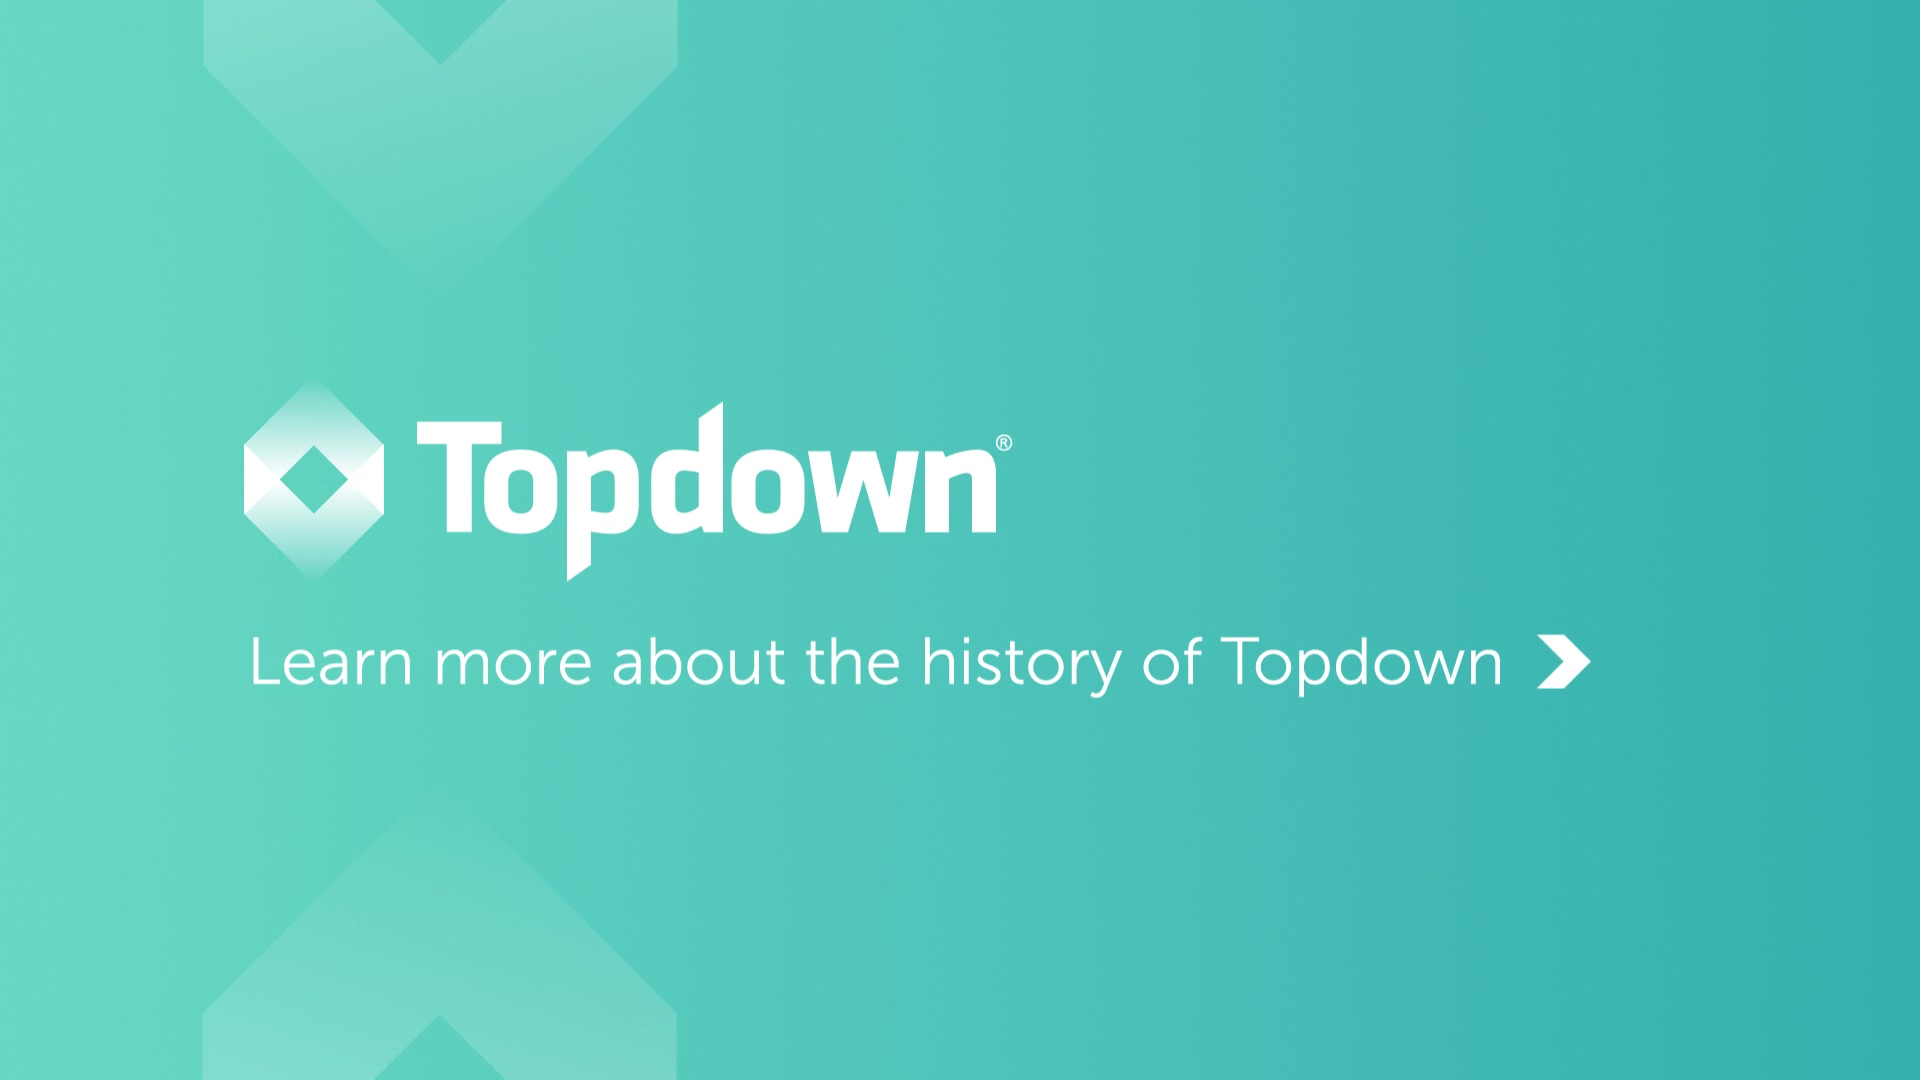 Story of Topdown